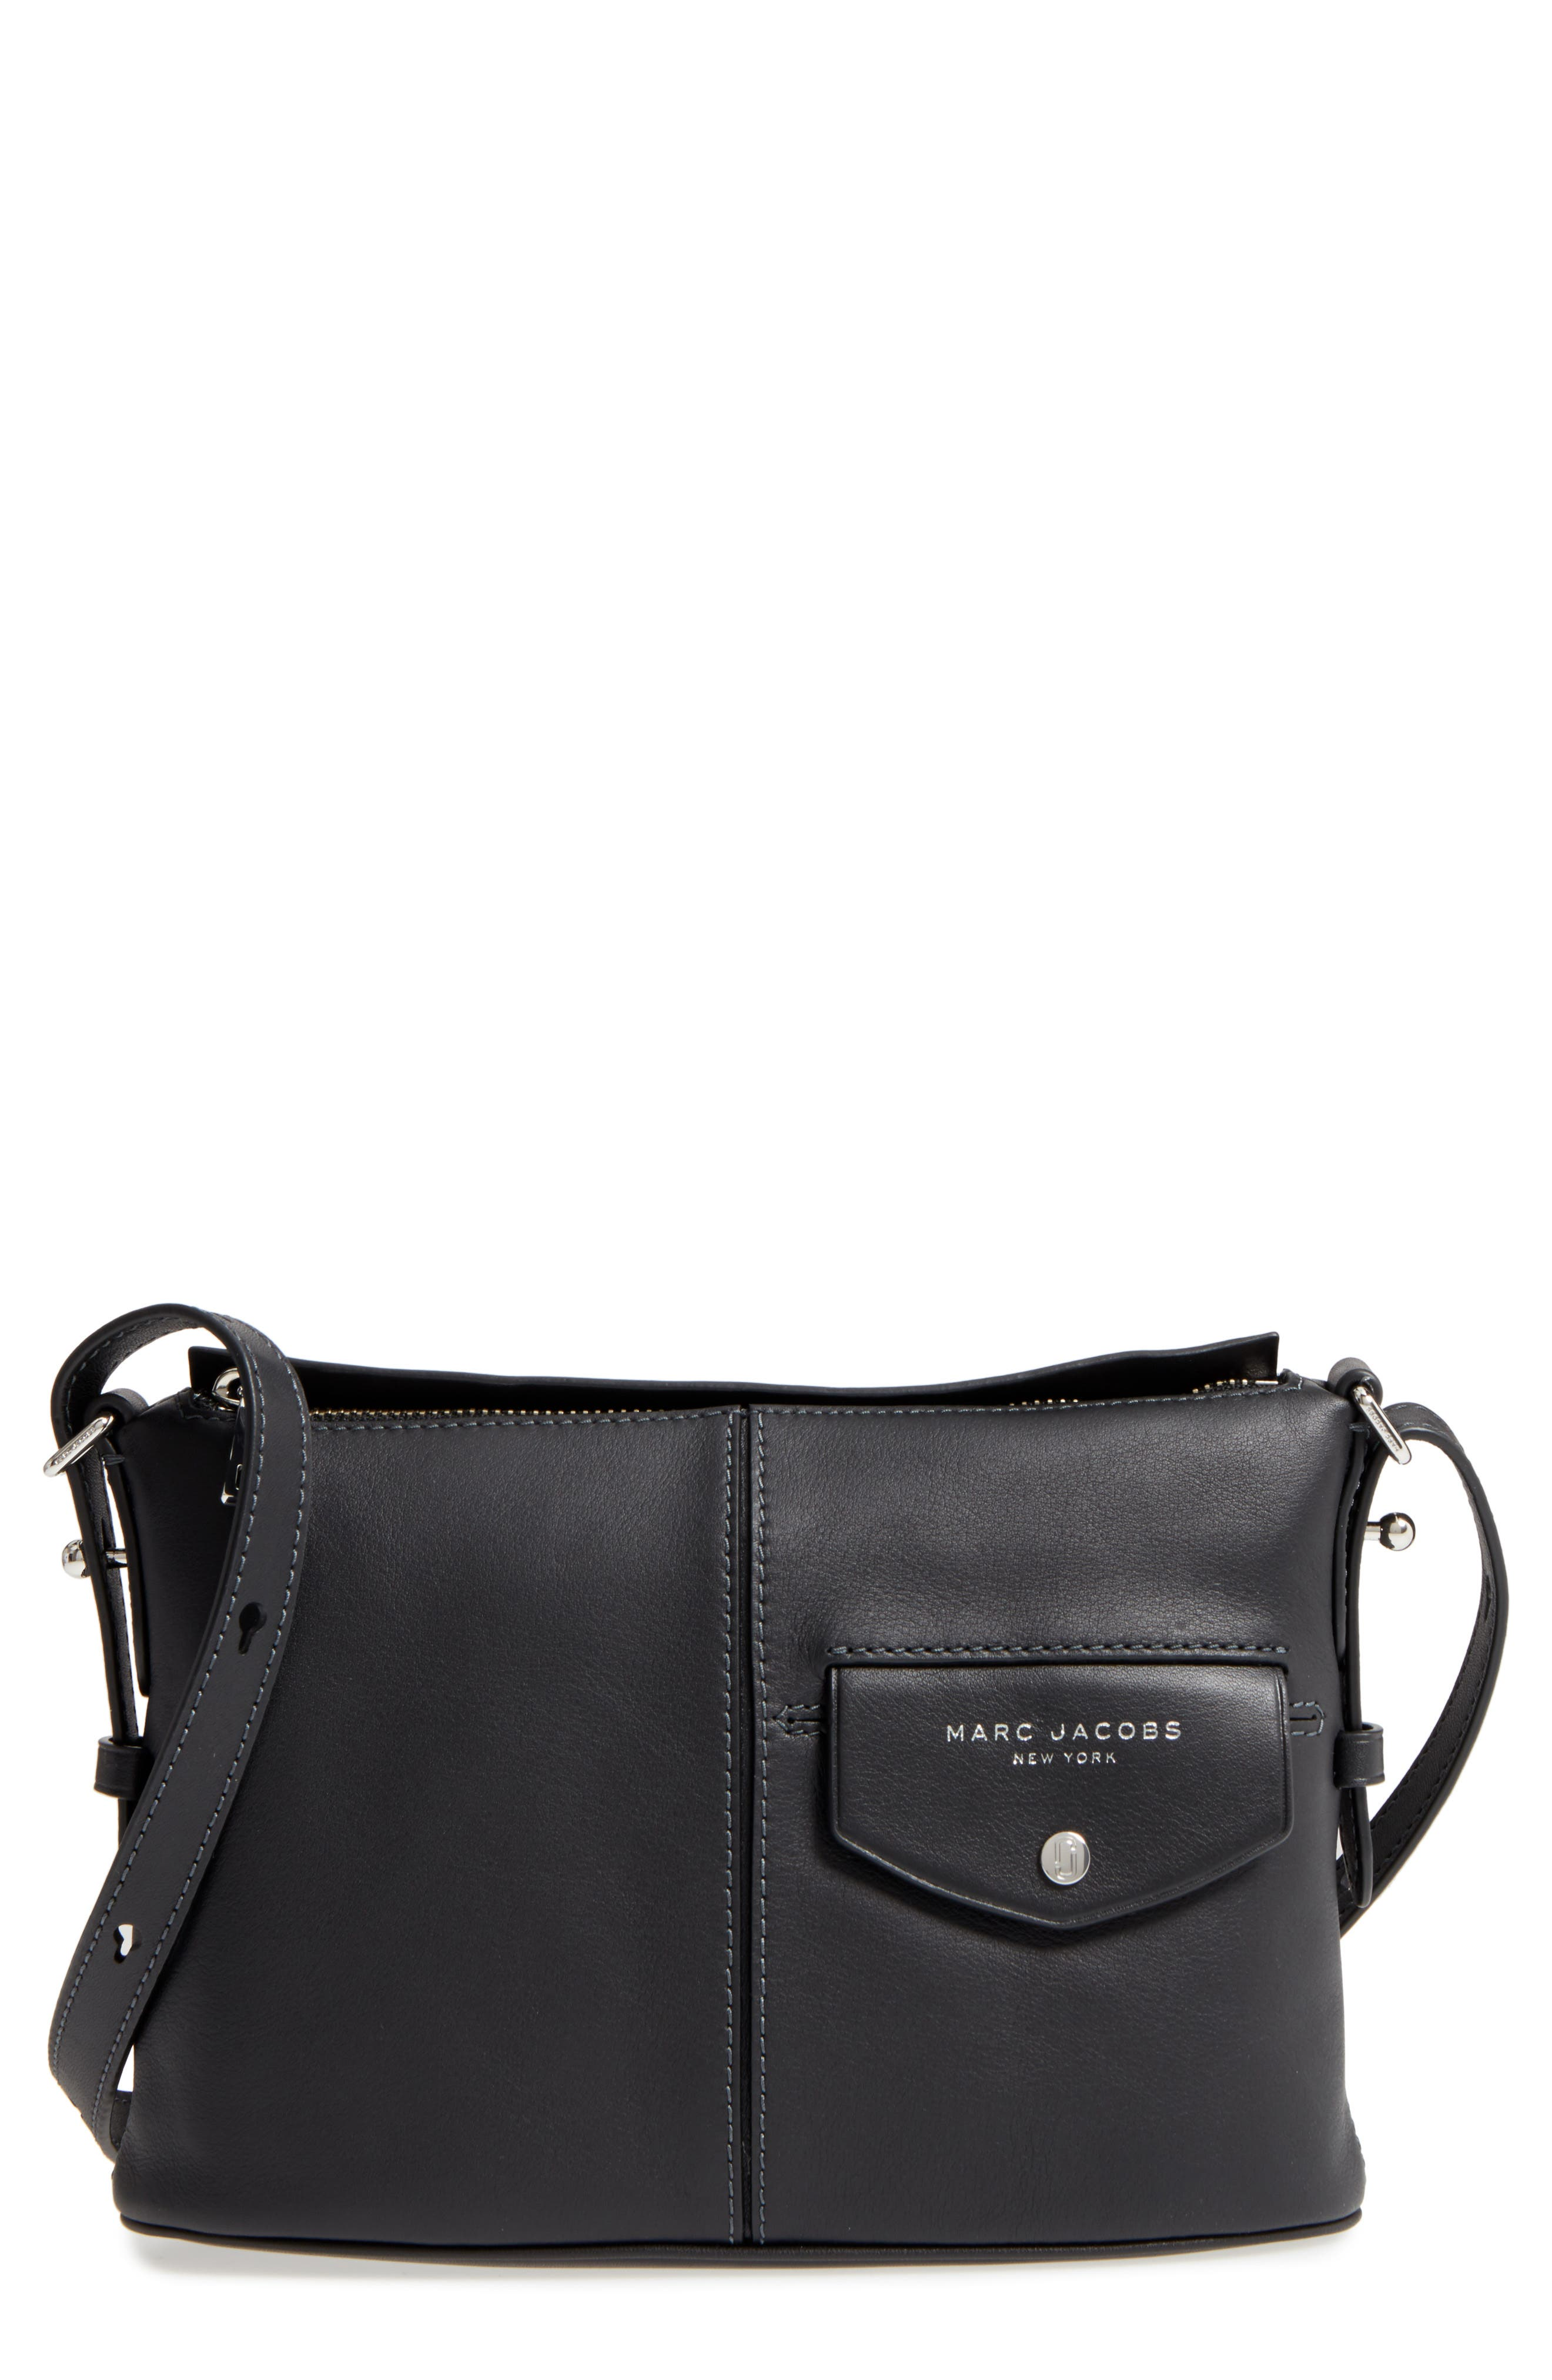 Main Image - MARC JACOBS The Side Sling Leather Crossbody Bag